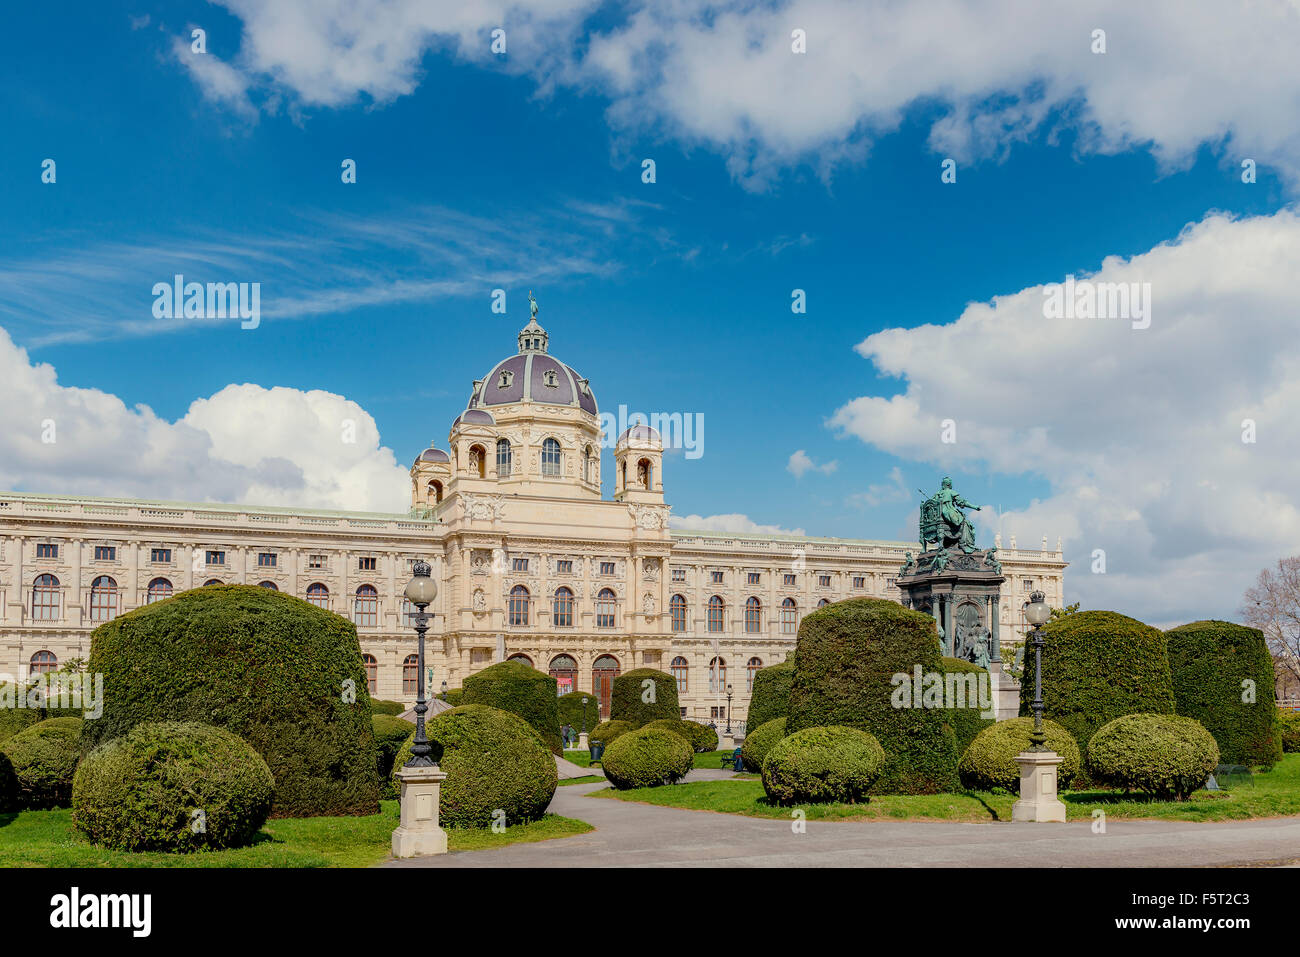 Austria, Vienna, View of Museum of Natural History - Stock Image